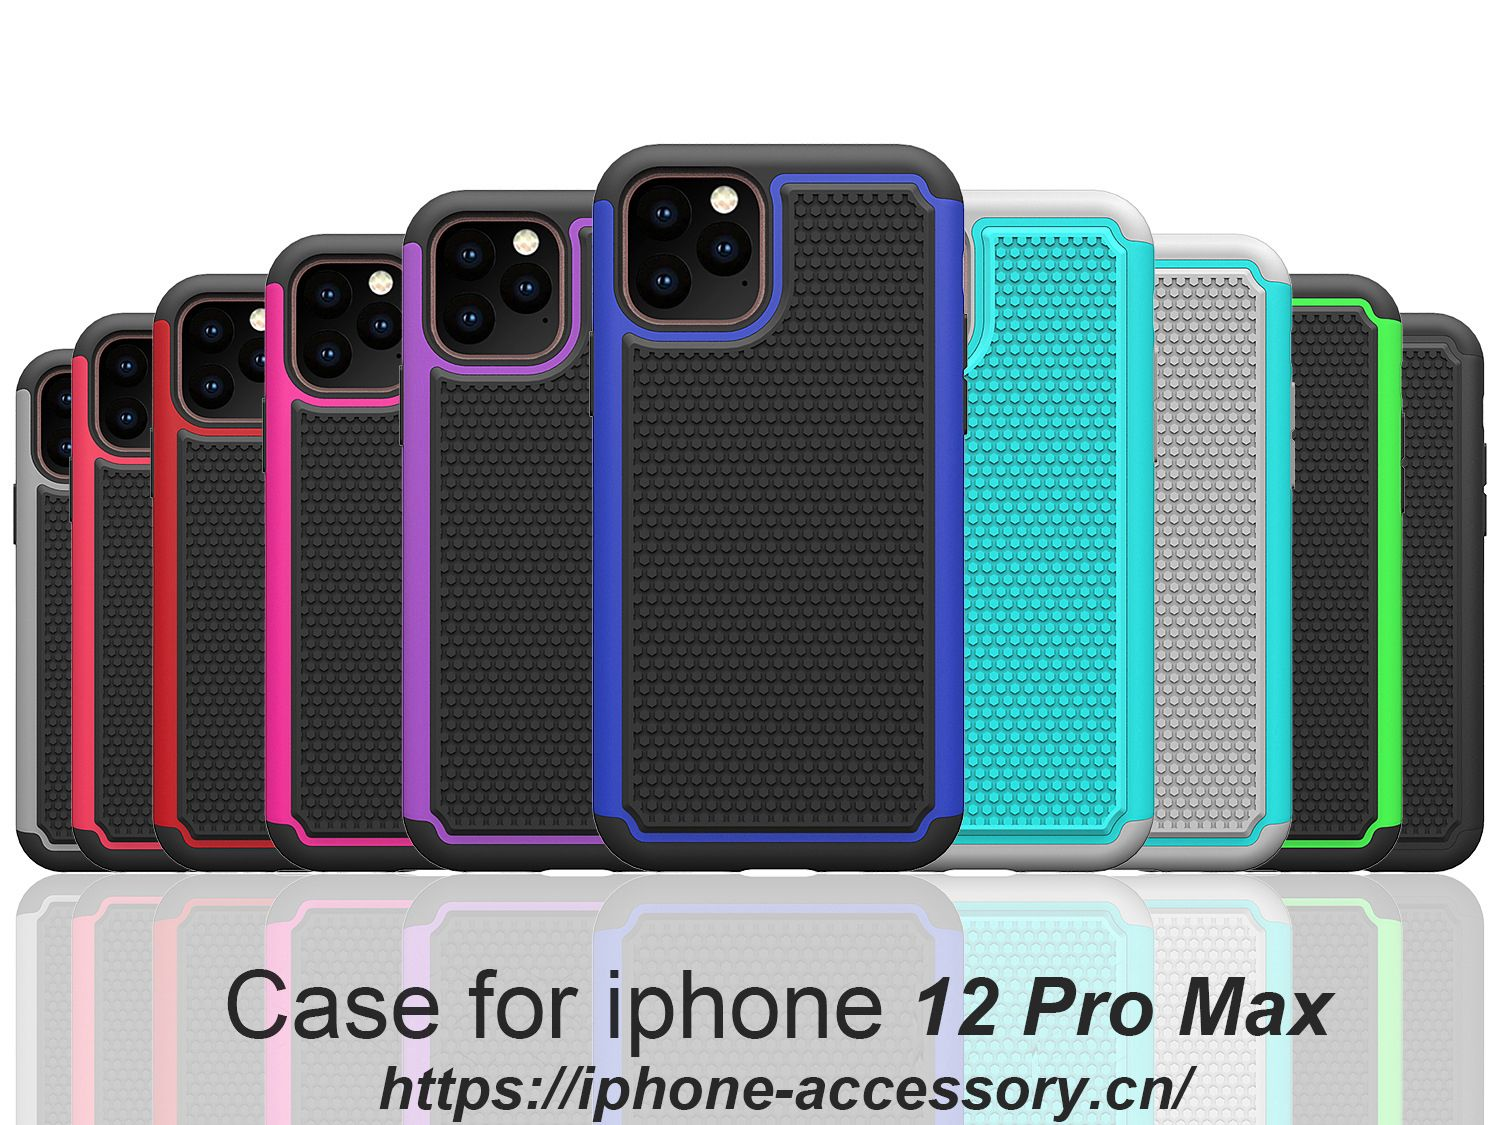 iPhone 12 Pro Max armor shock proof Case